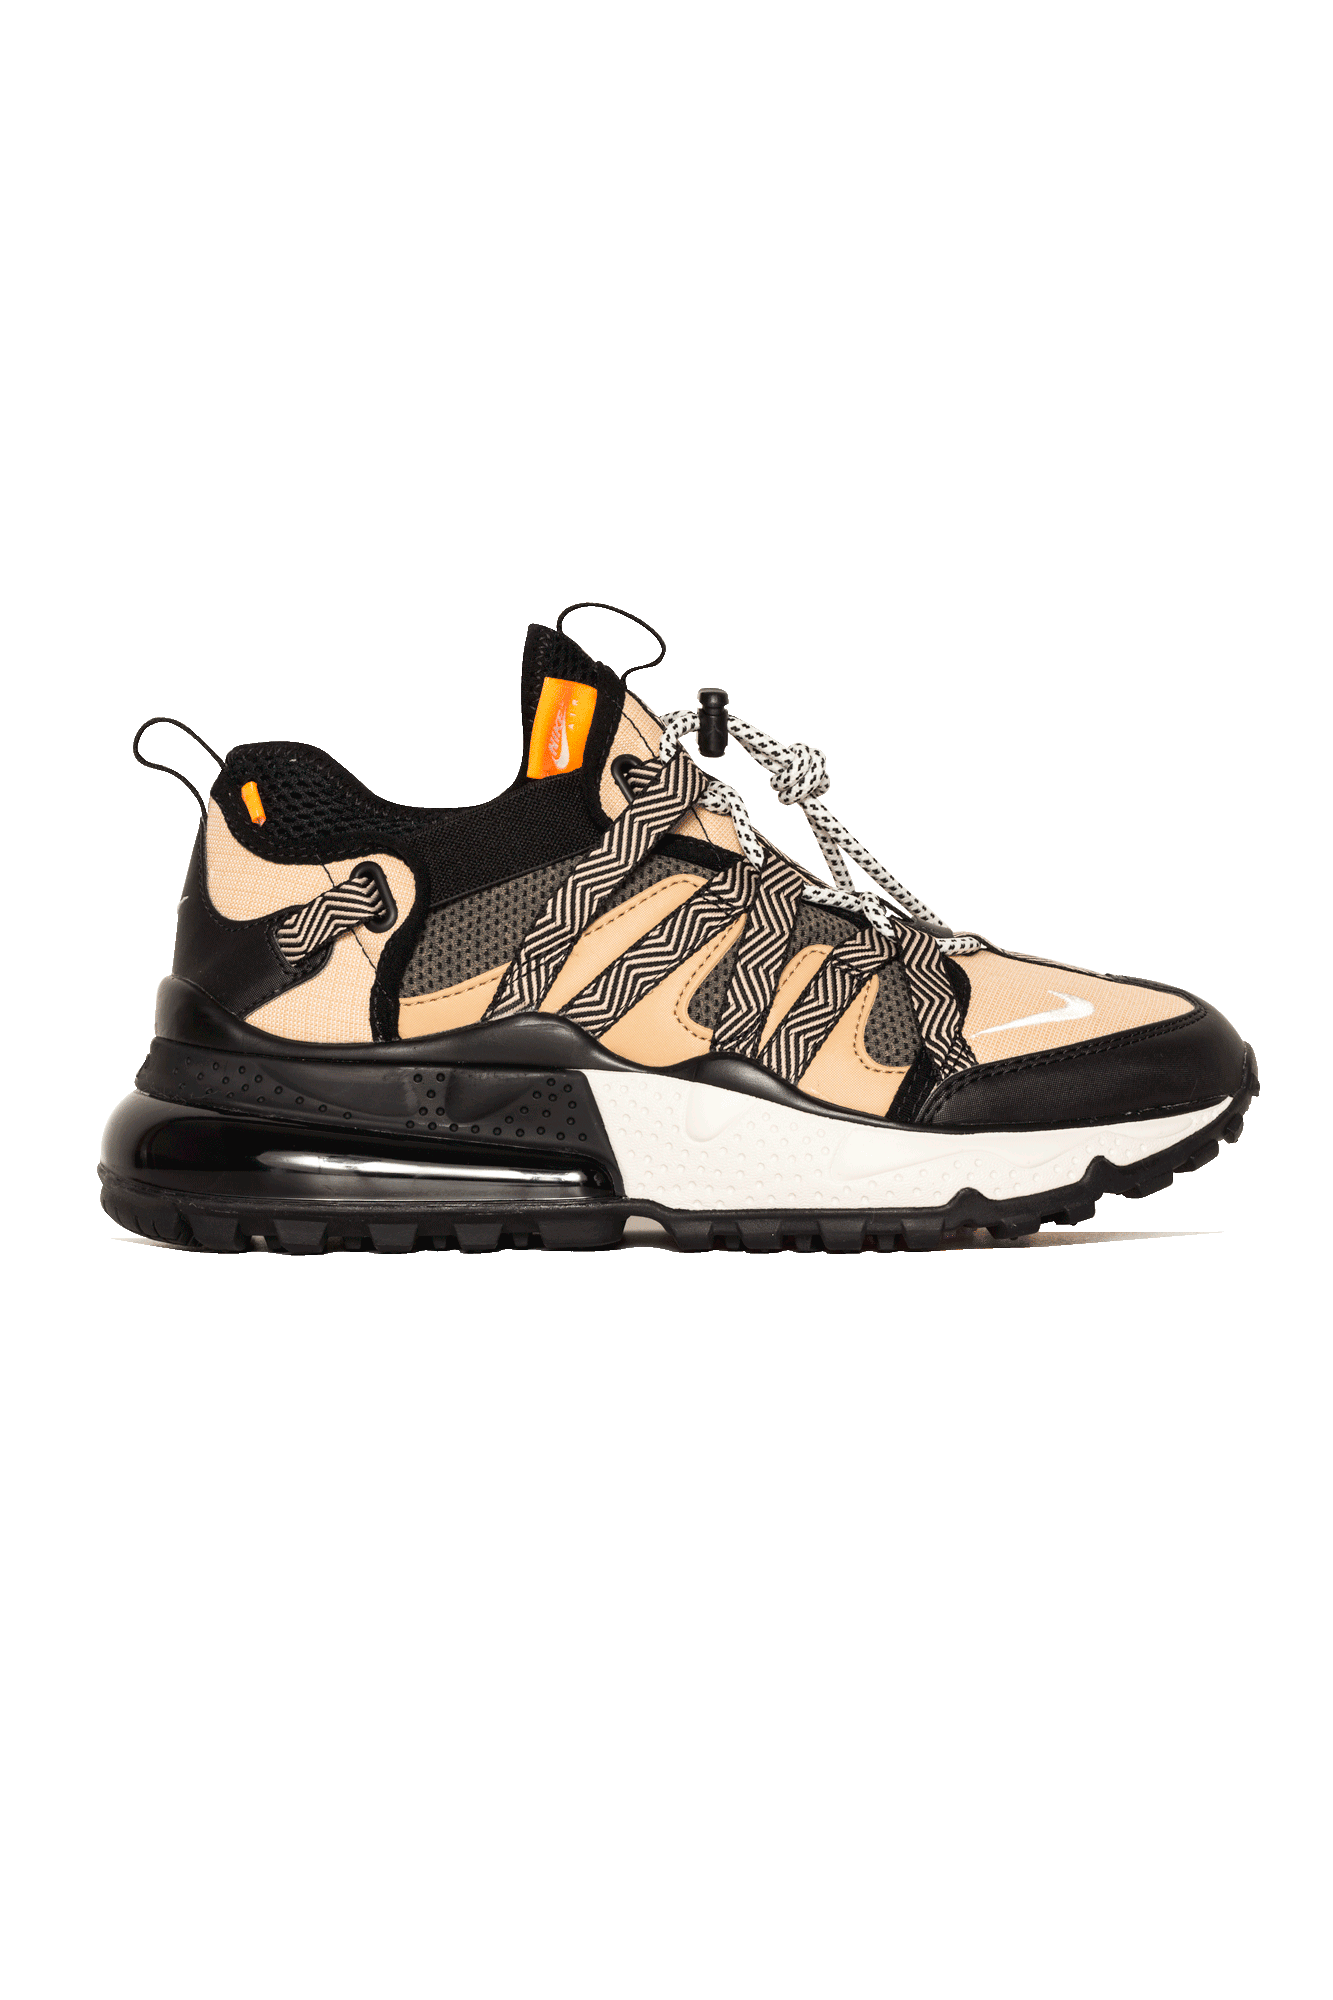 Sneakers Nike Air Max 270 Bowfin Brown - One Block Down